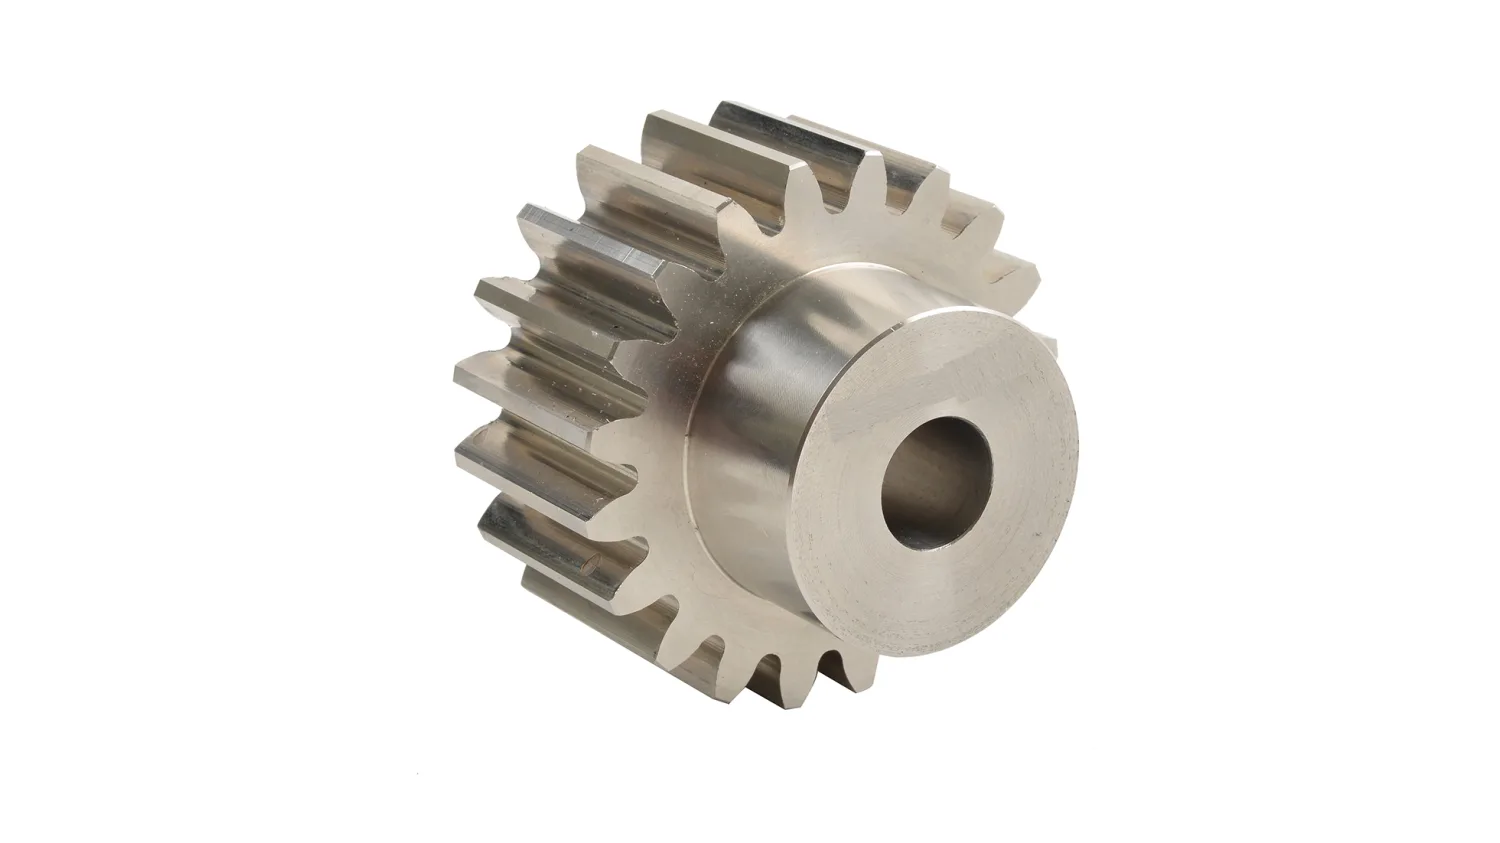 2-5-Mod-x-59-Tooth-Metric-Spur-Gear-in-Steel